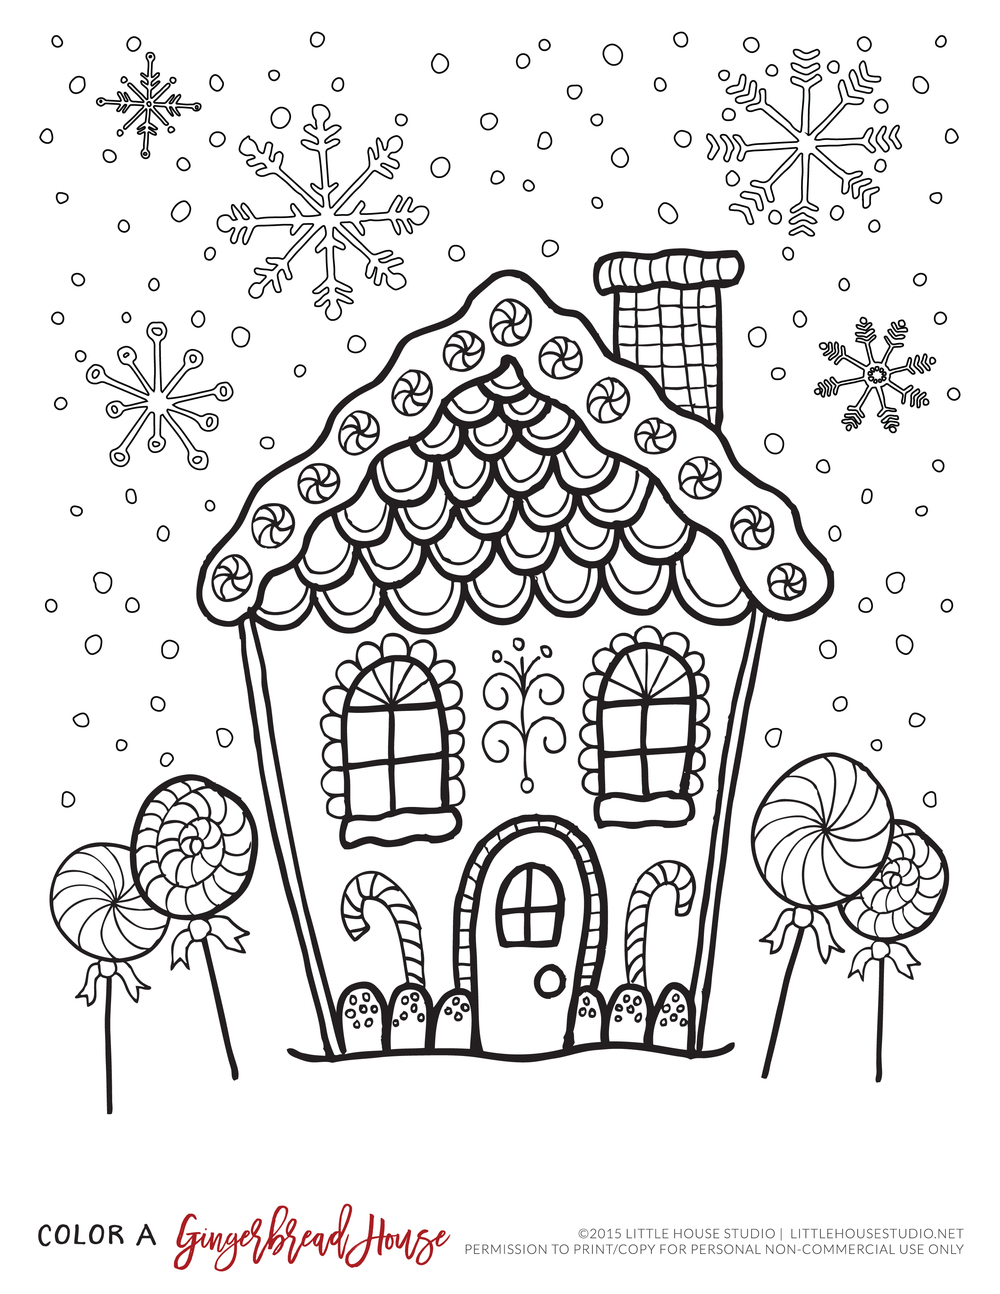 LHS_GingerbreadHouse-ColoringPage.jpg